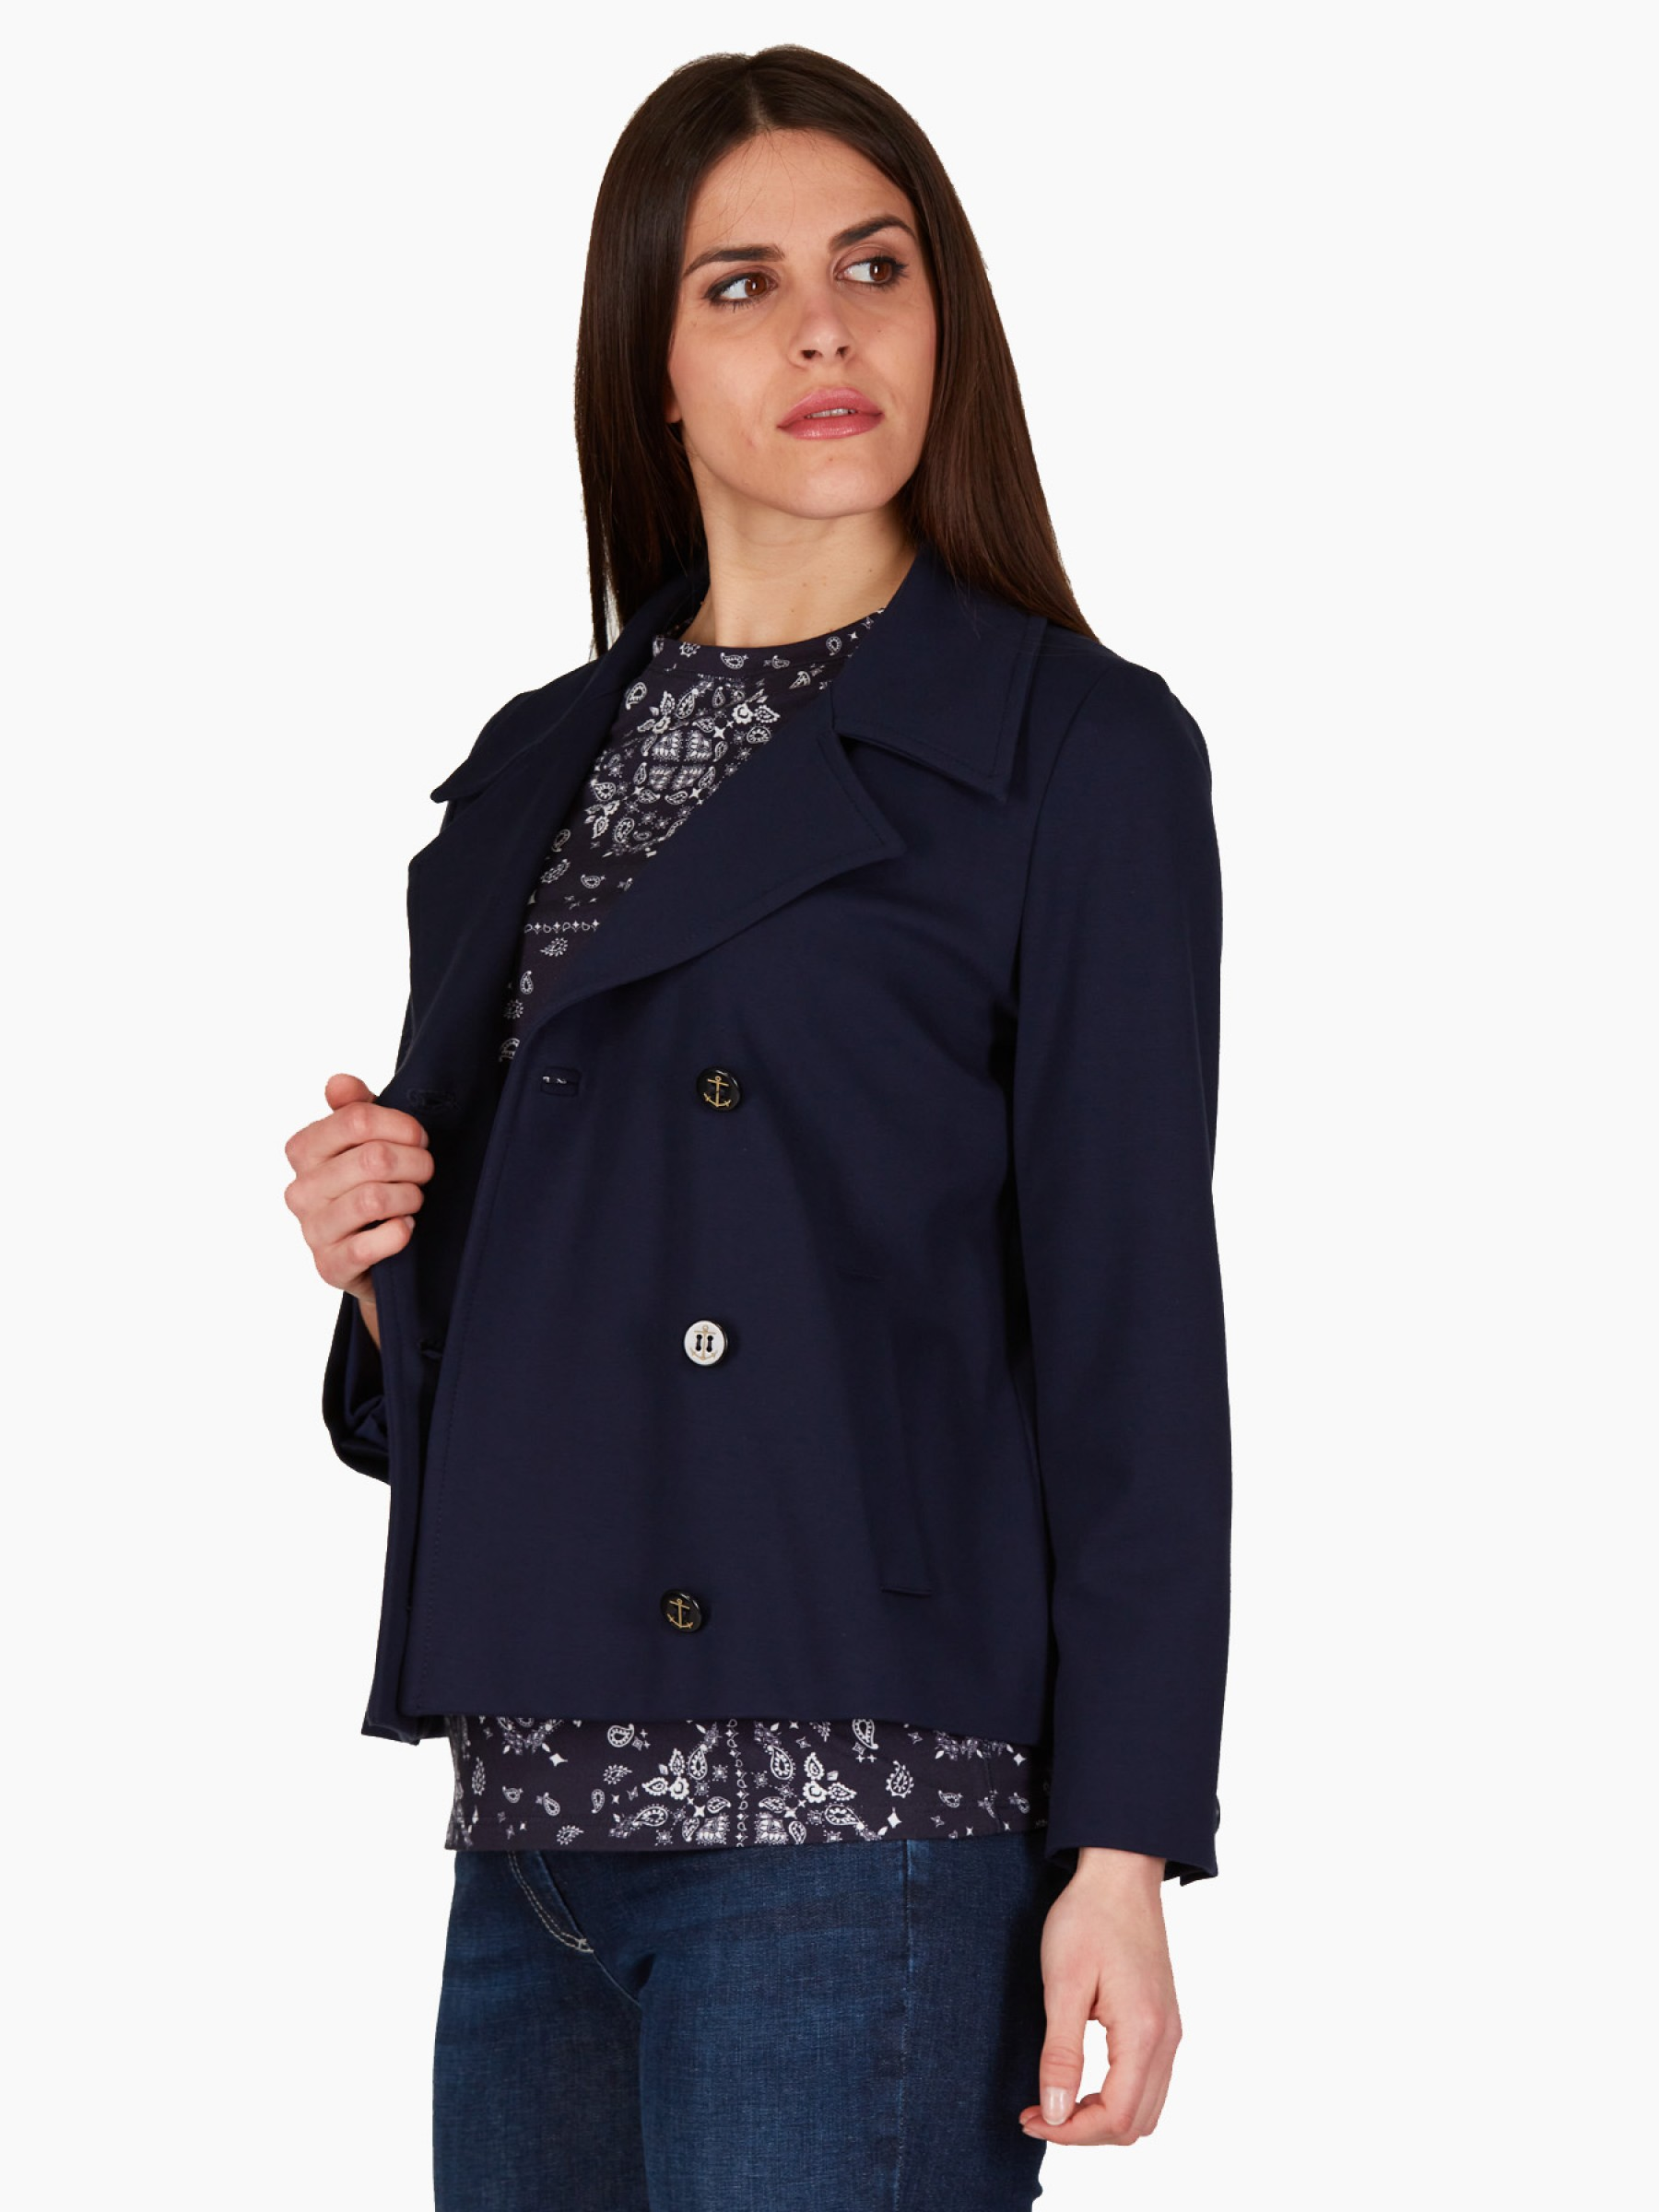 Marella Giacca in jersey PE2021 ORO-001-NAVY